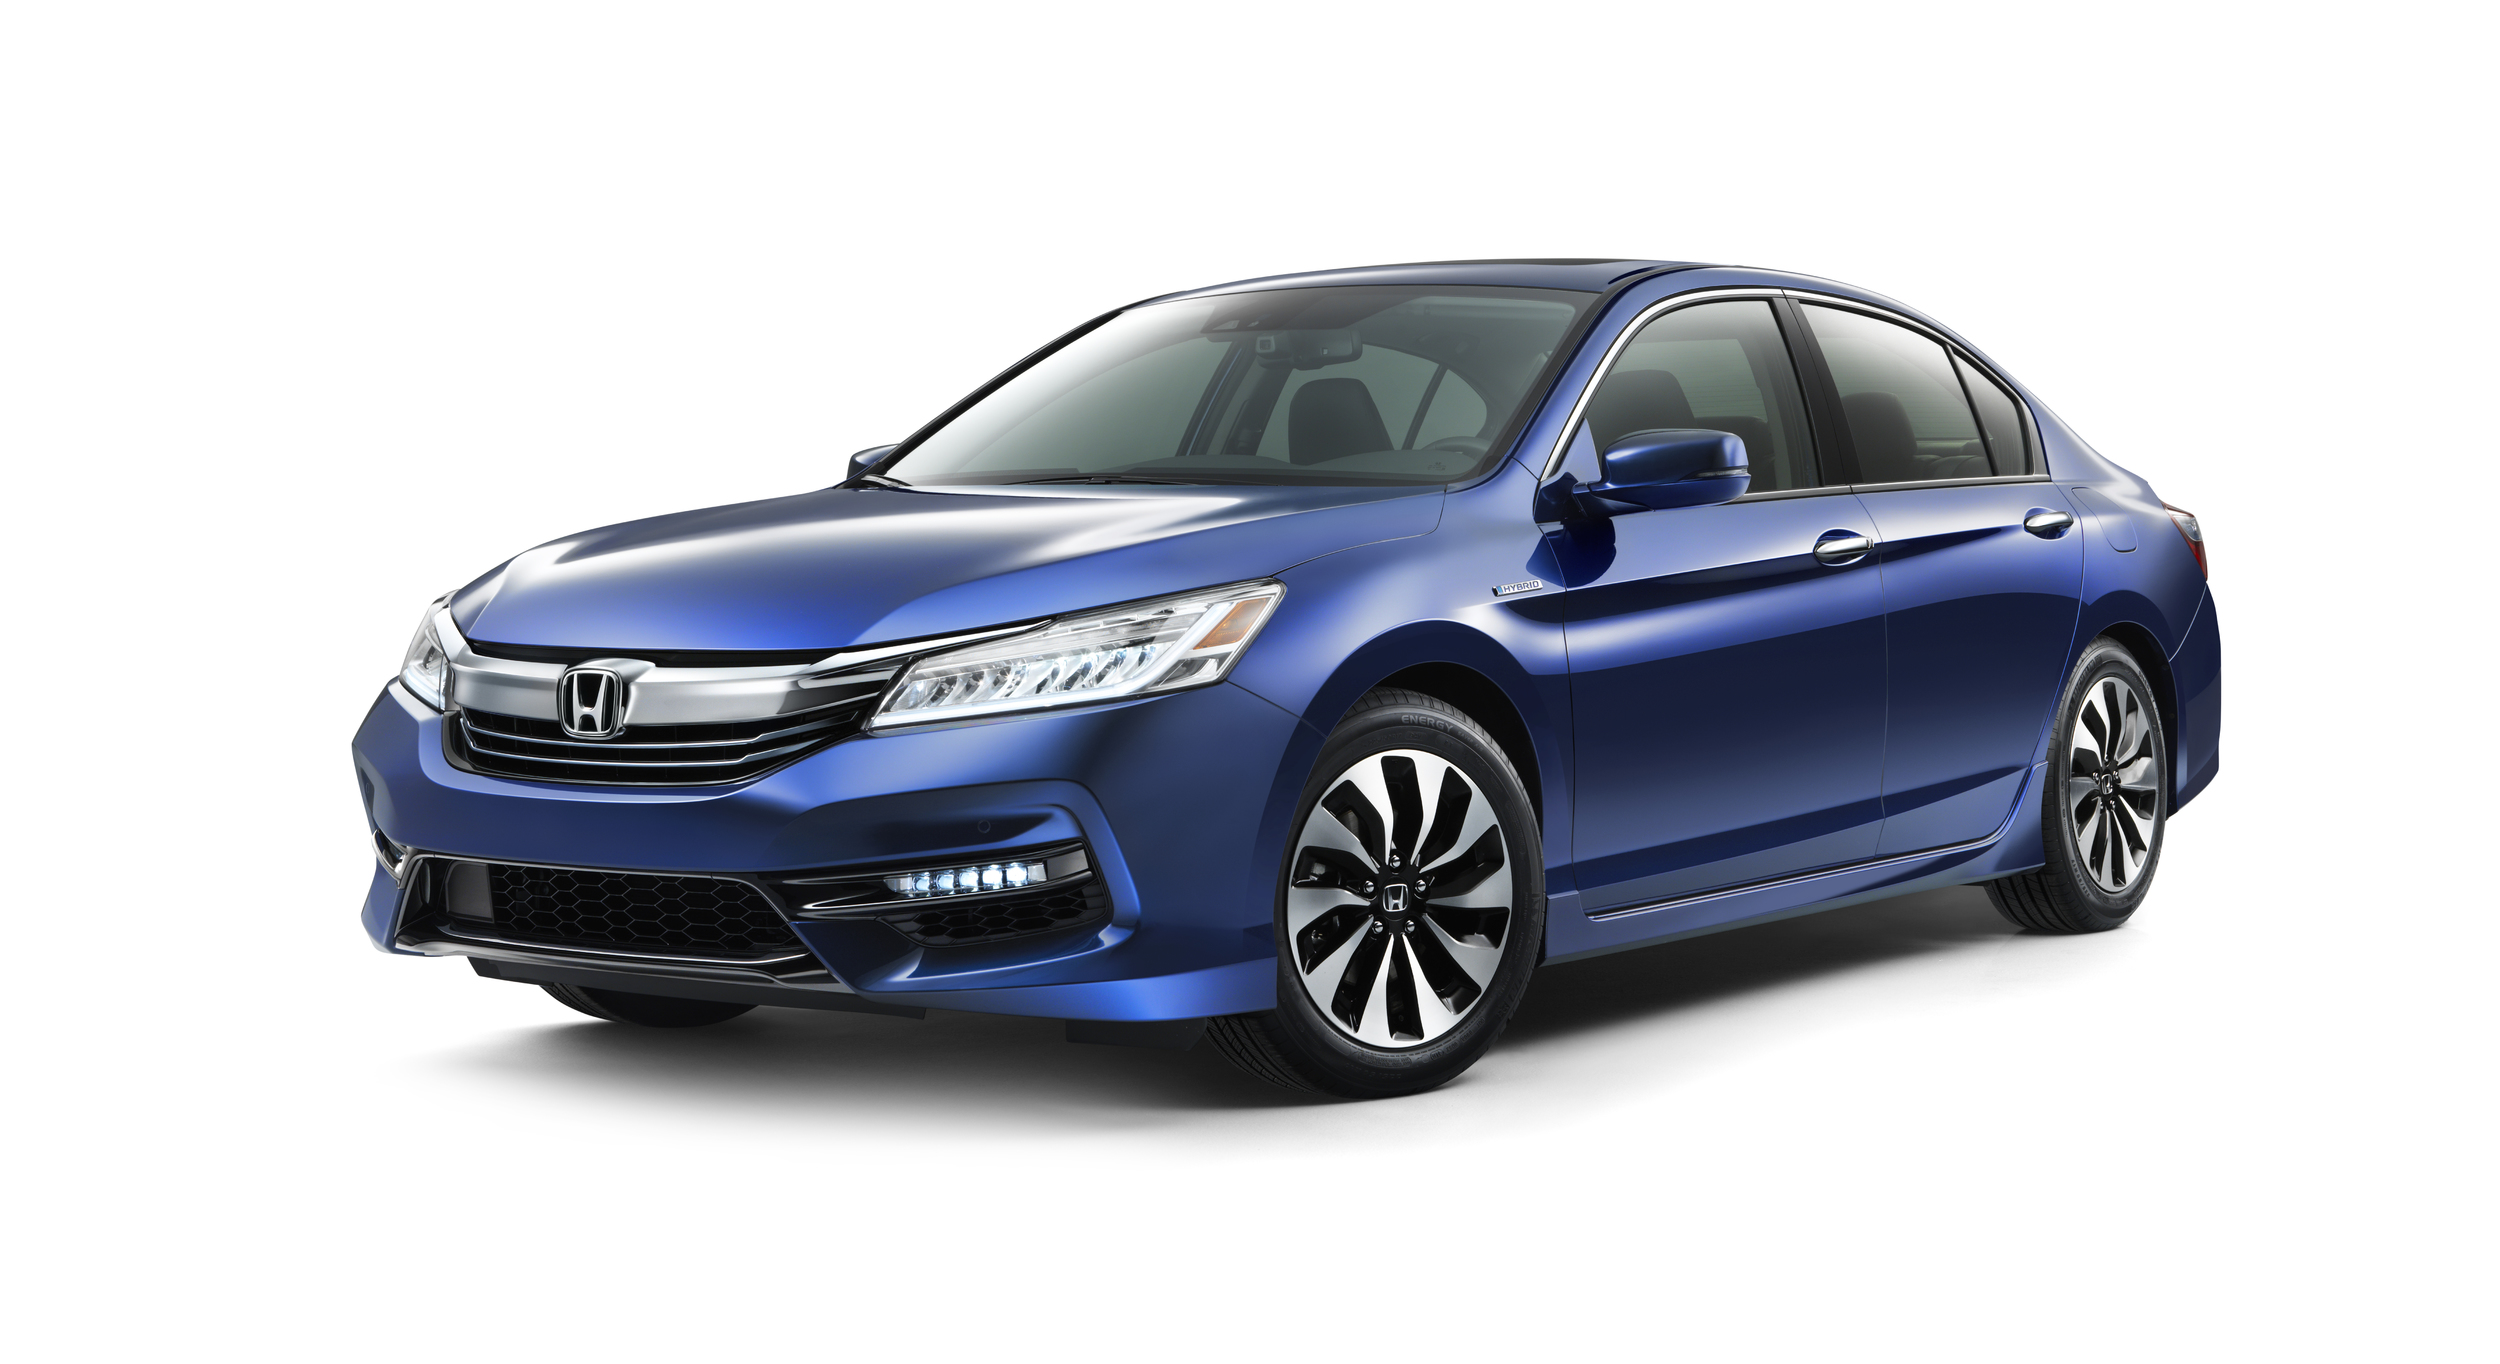 2017 honda accord hybrid tops segment with 49 mpg city autoevolution. Black Bedroom Furniture Sets. Home Design Ideas